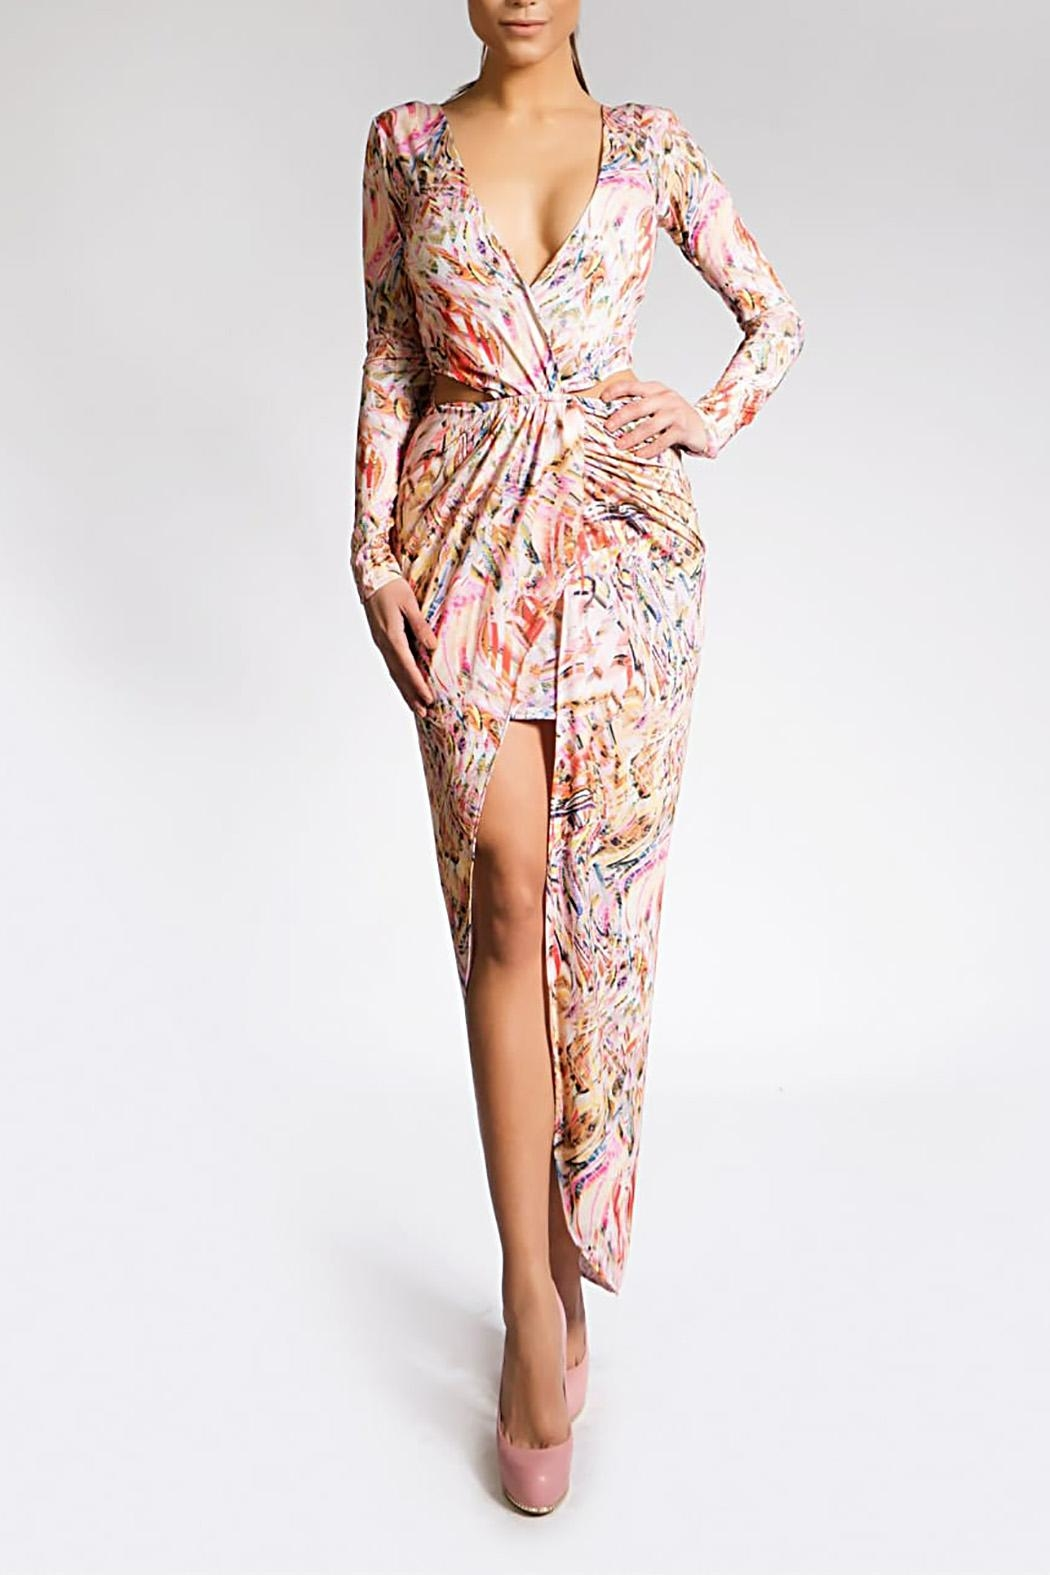 Savee Couture Double Wrapped Dress - Main Image